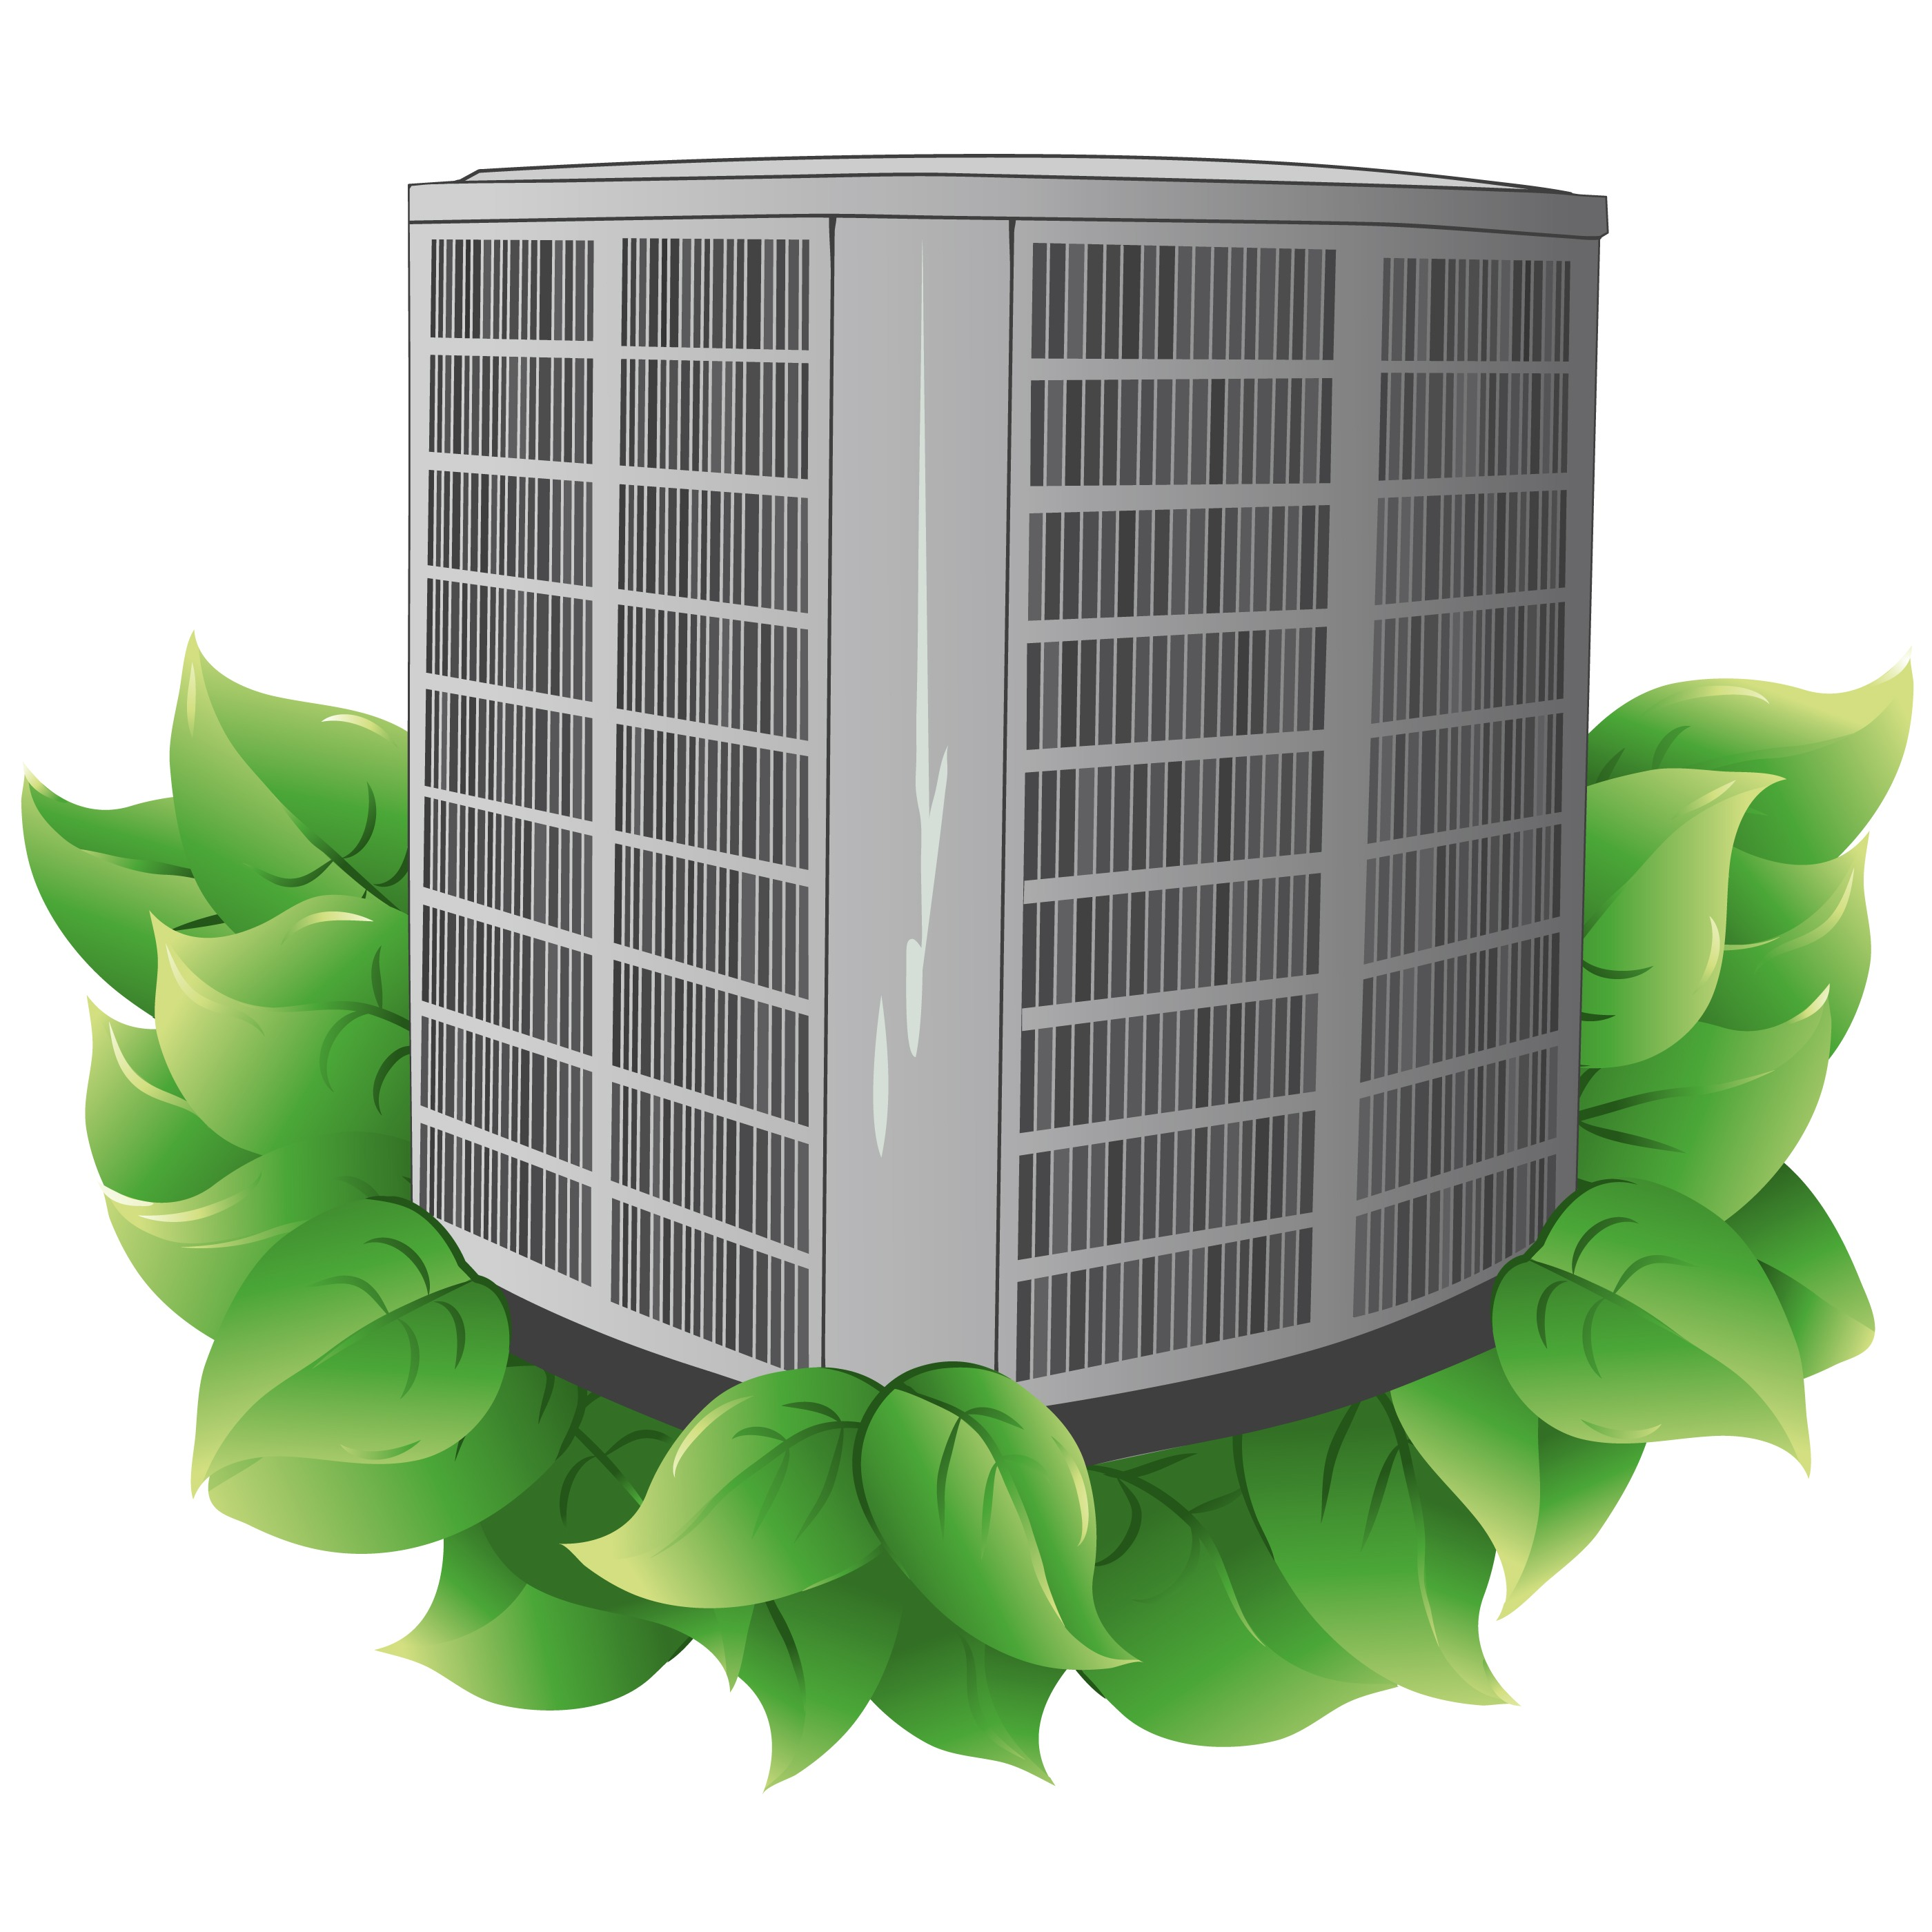 Home energy saving tips - How to choose an energy efficient air conditioner ...